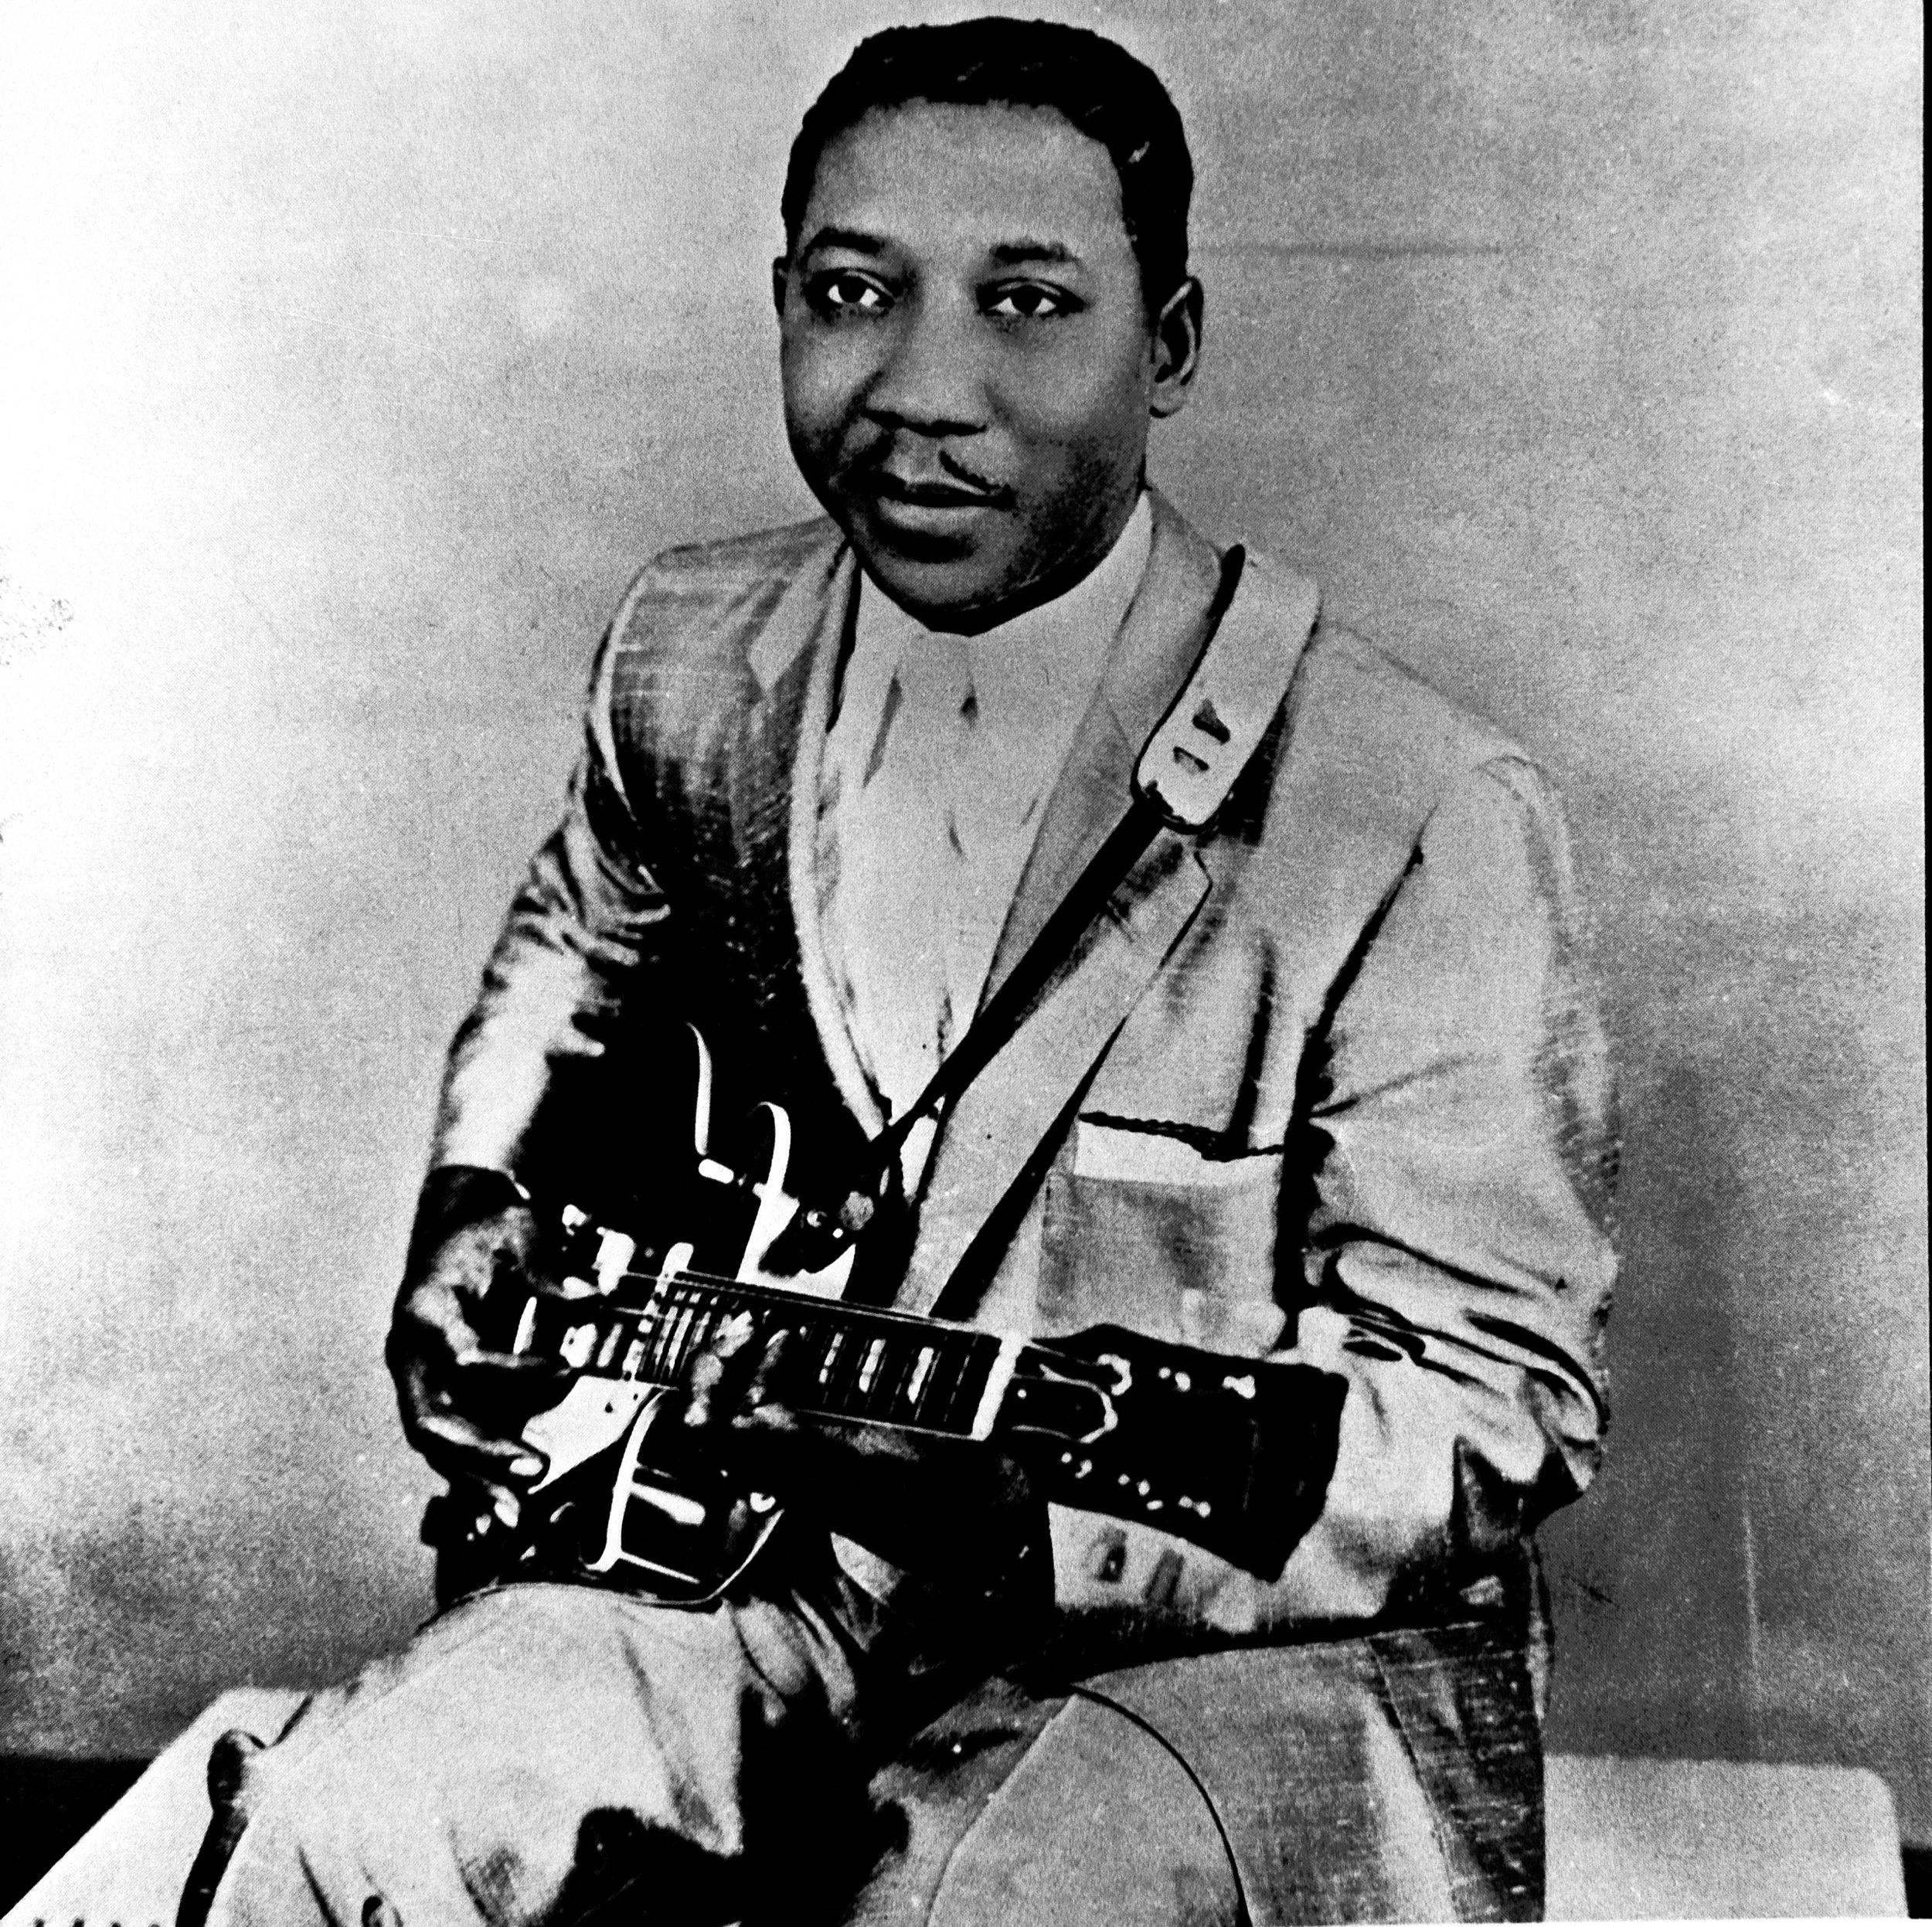 """I Just Want to Make Love to You"" - Muddy Waters"